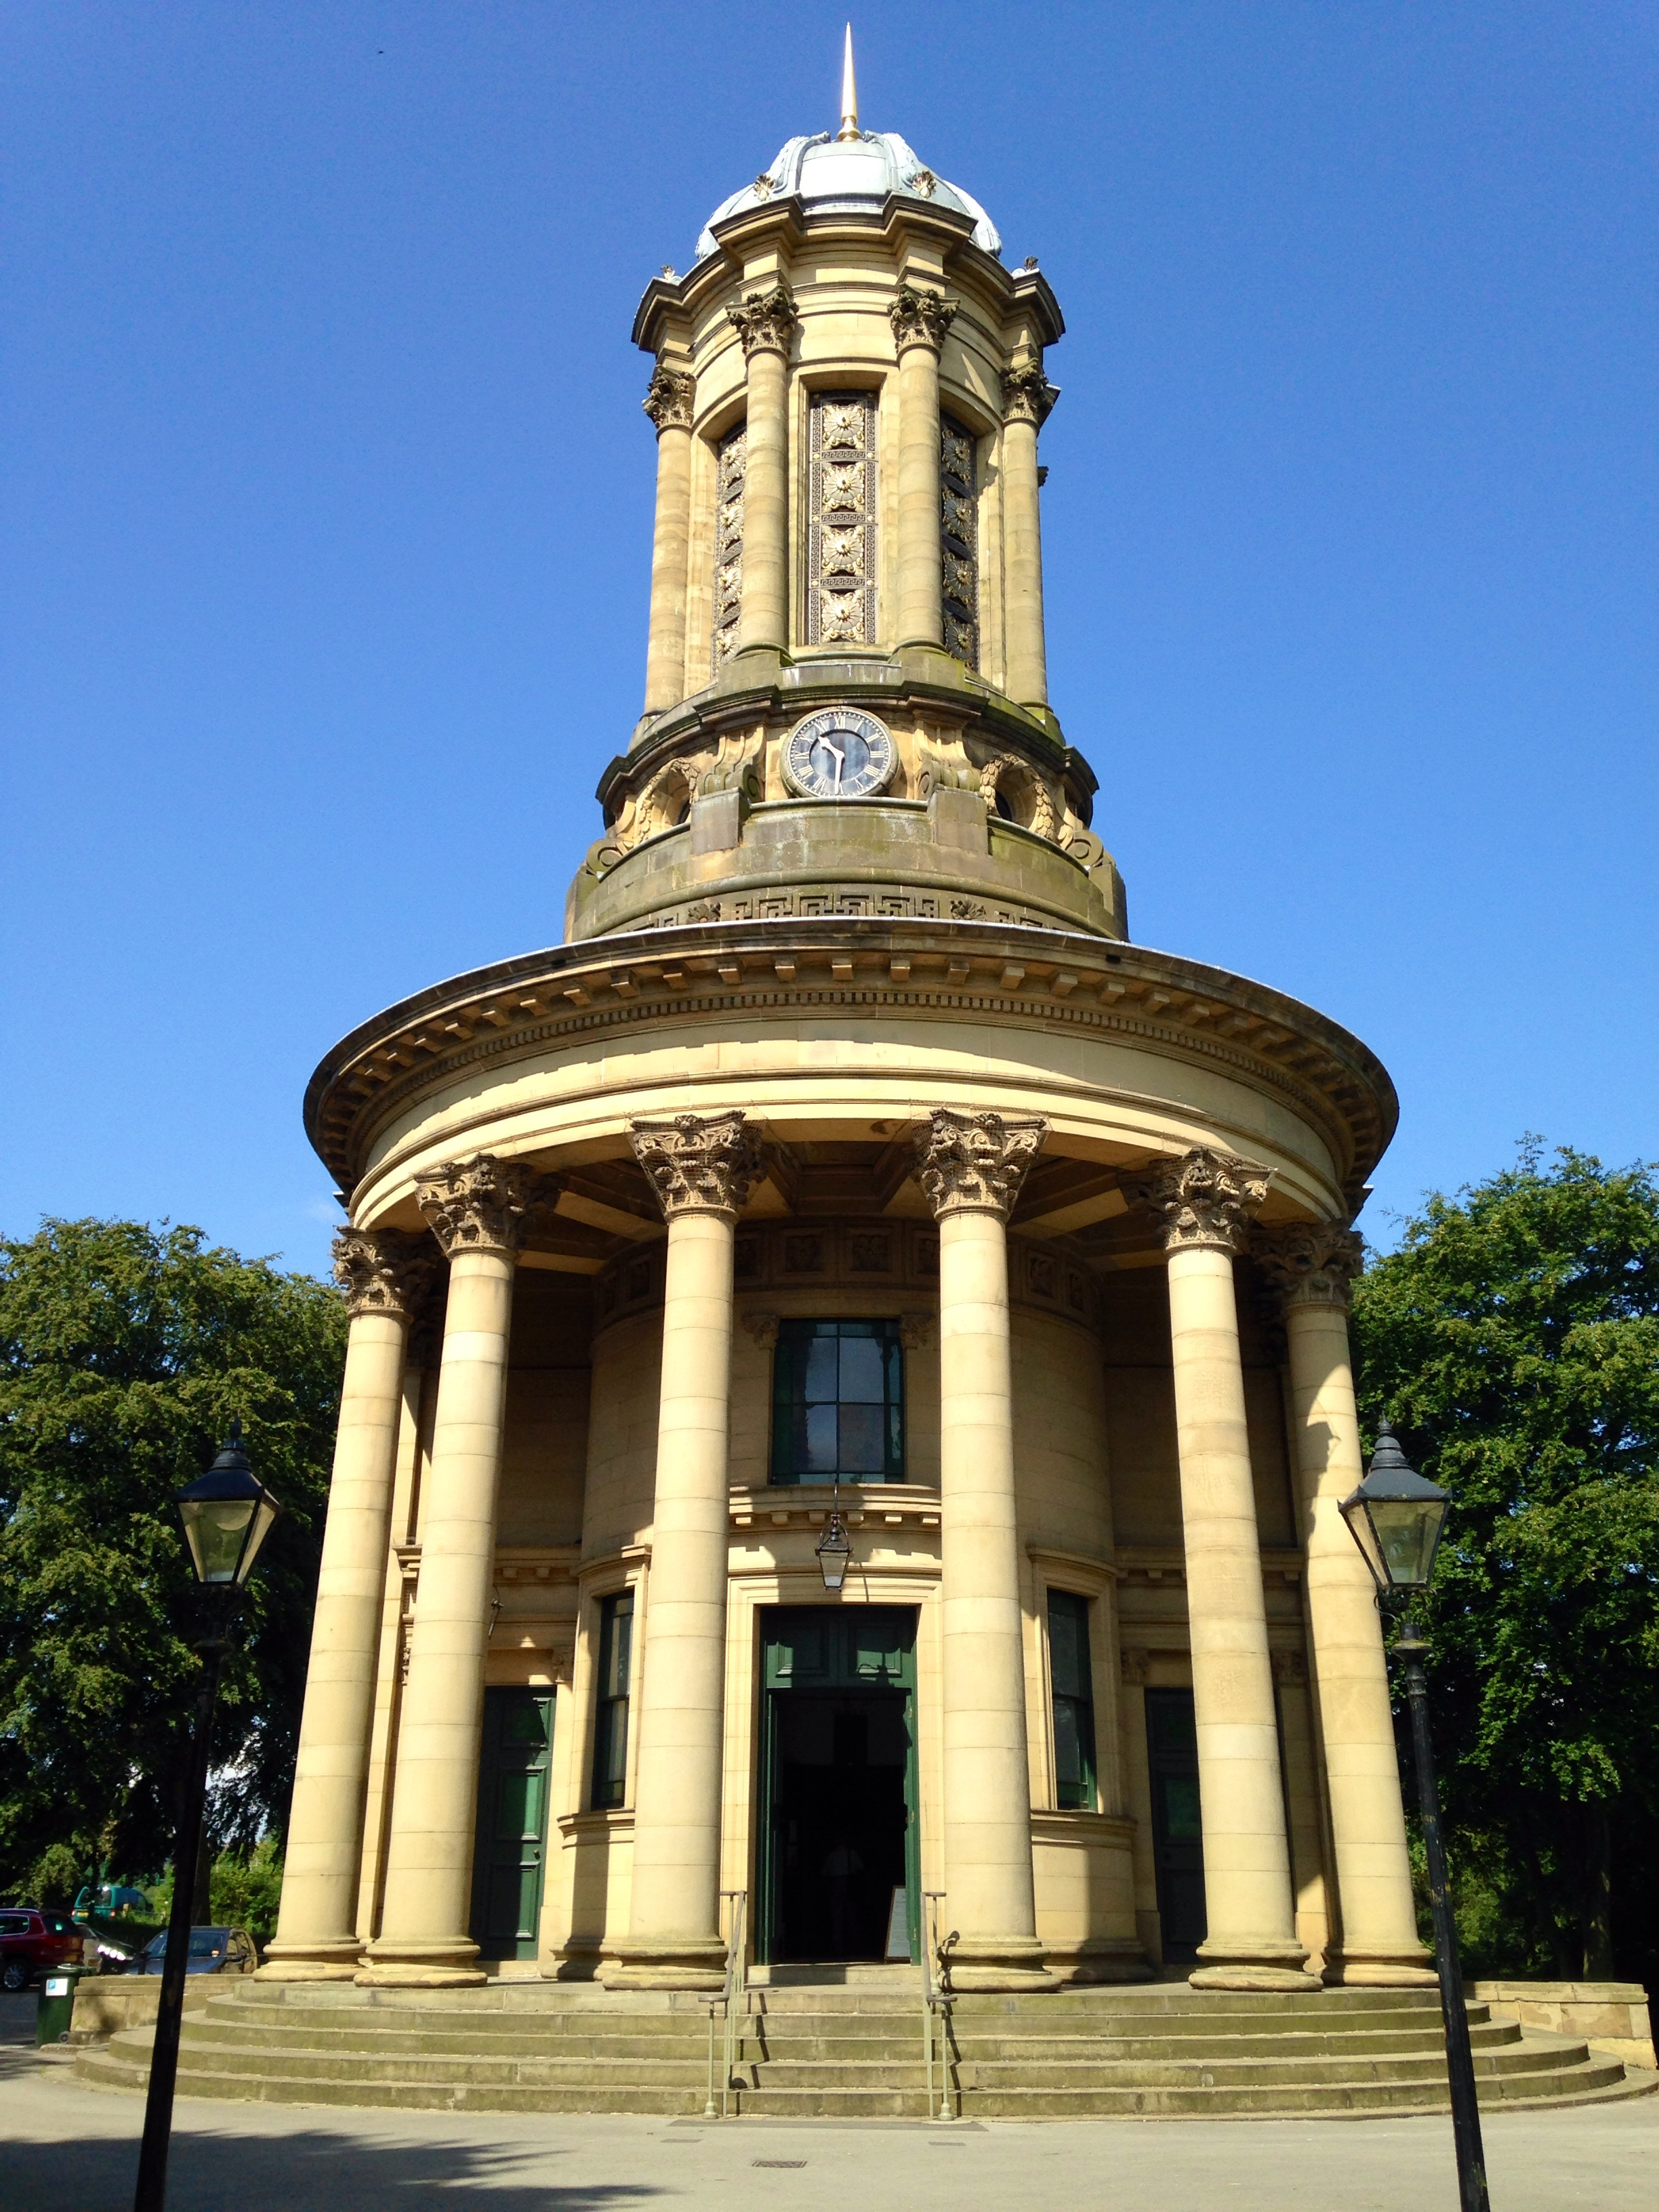 SALTAIRE, United Reformed Church, Yorkshire (Sarah Crossland 2014)